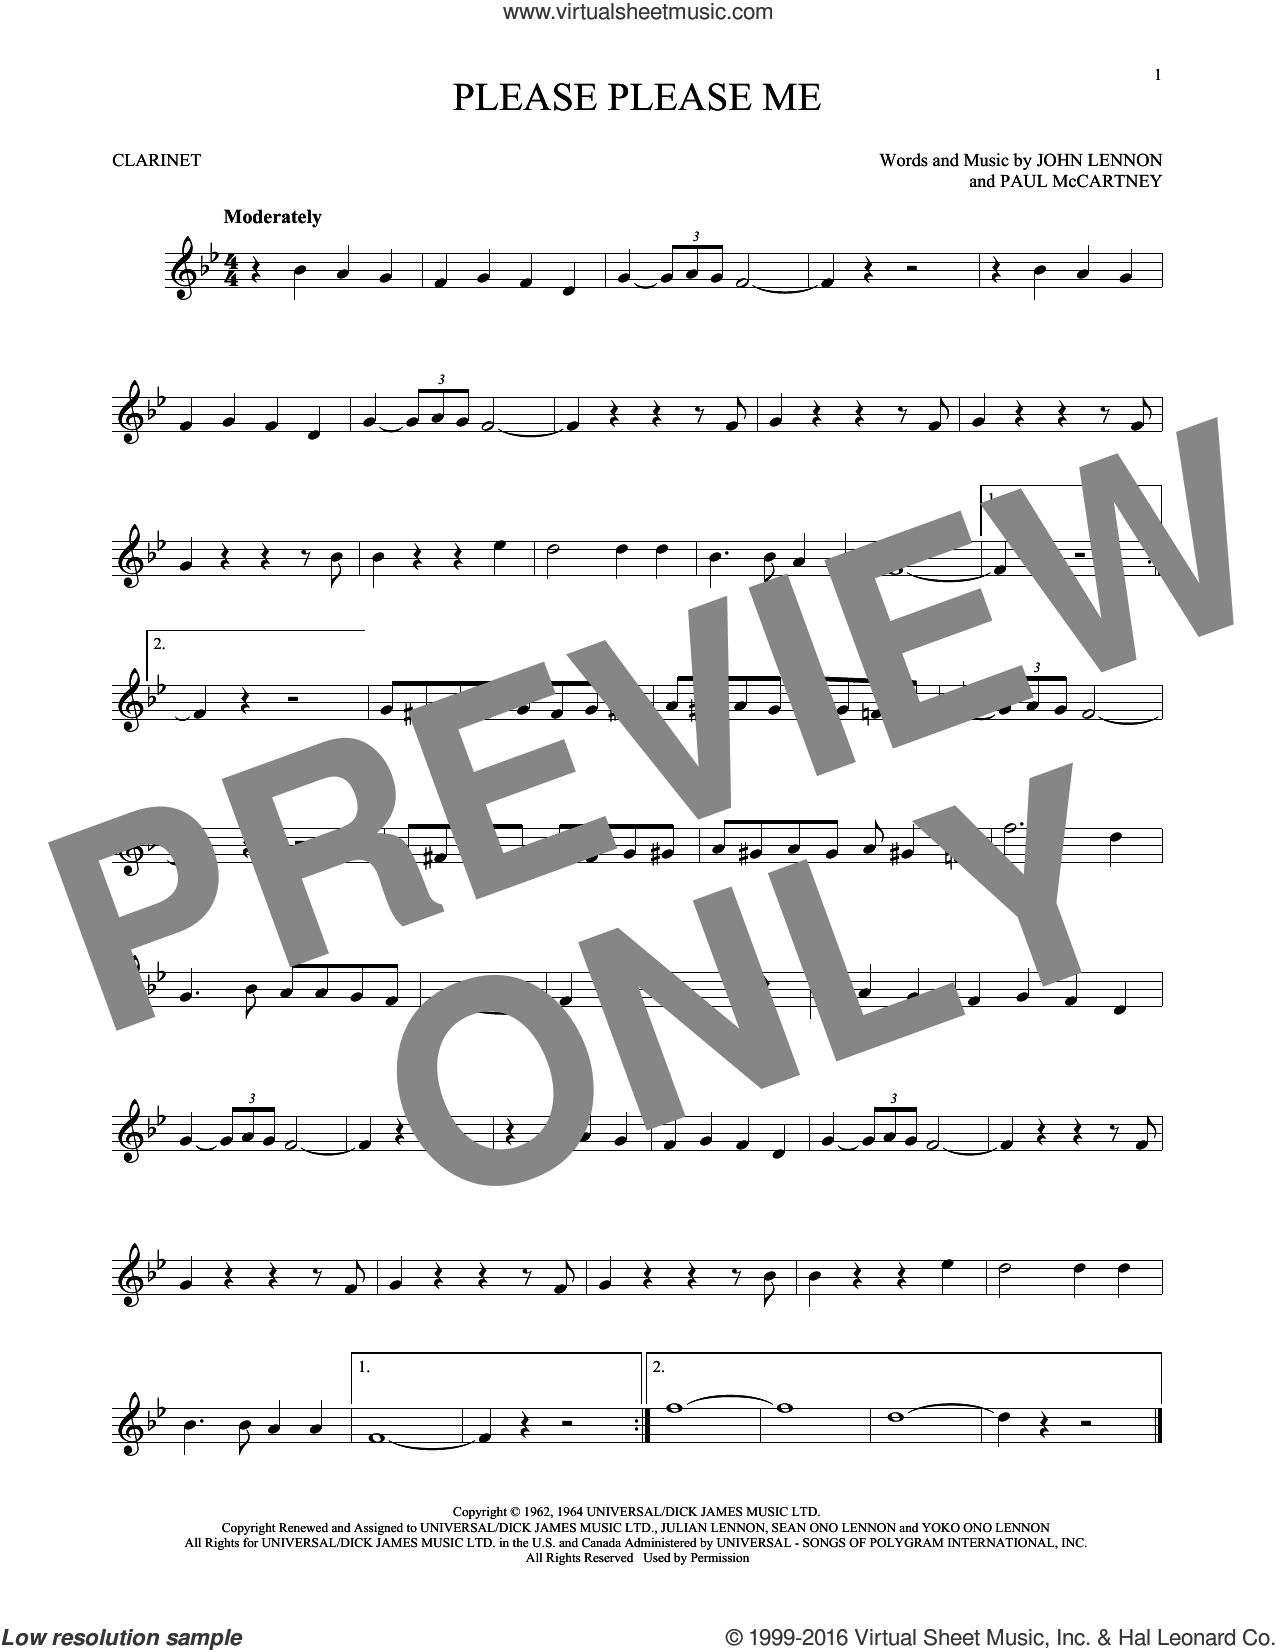 Please Please Me sheet music for clarinet solo by The Beatles, John Lennon and Paul McCartney, intermediate skill level